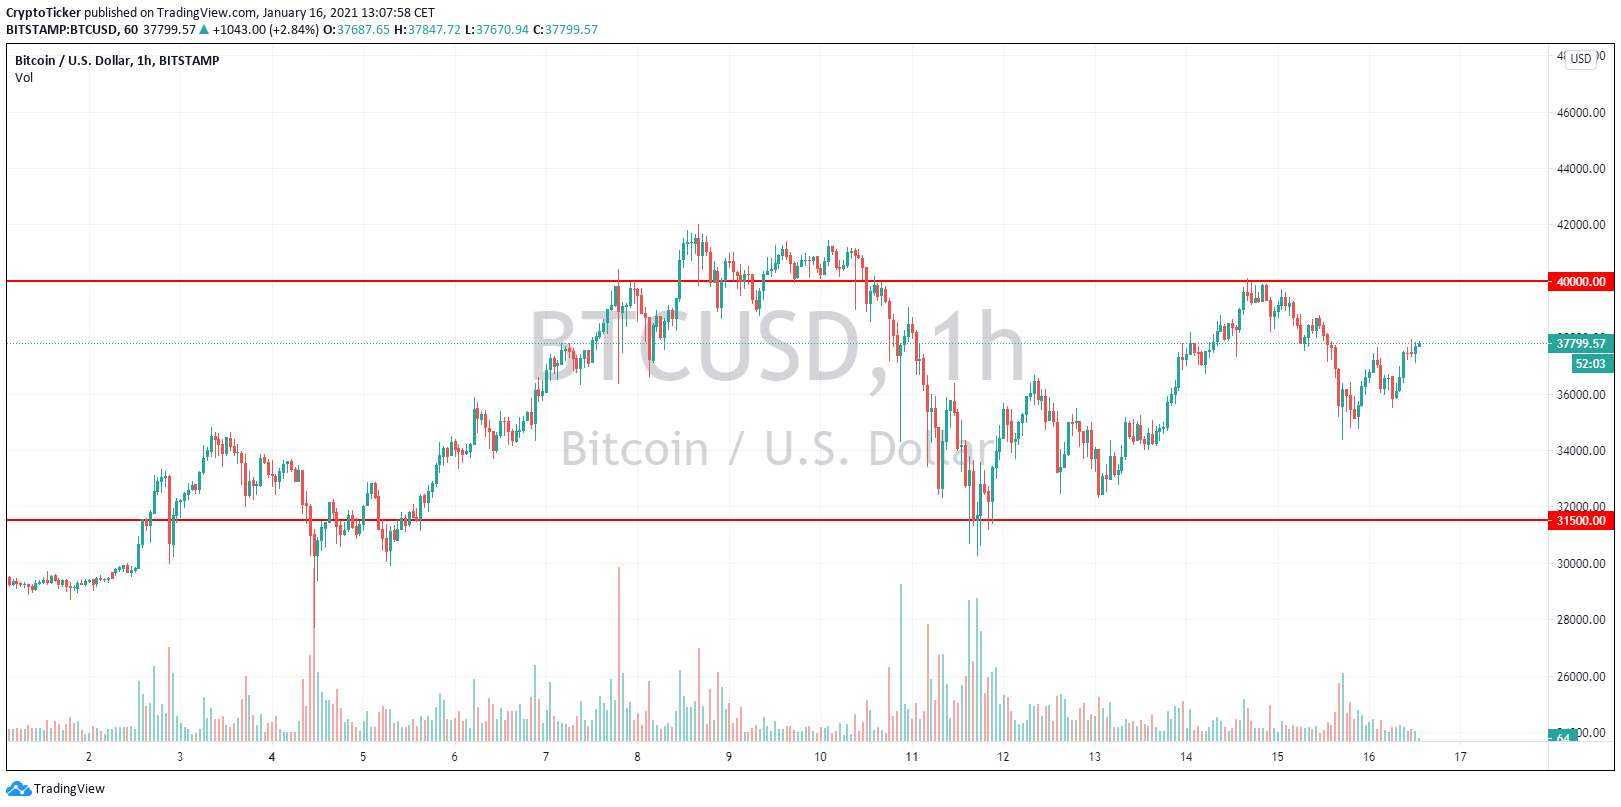 BTC/USD 1-hour chart showing a consolidation area as predicted in previous articles